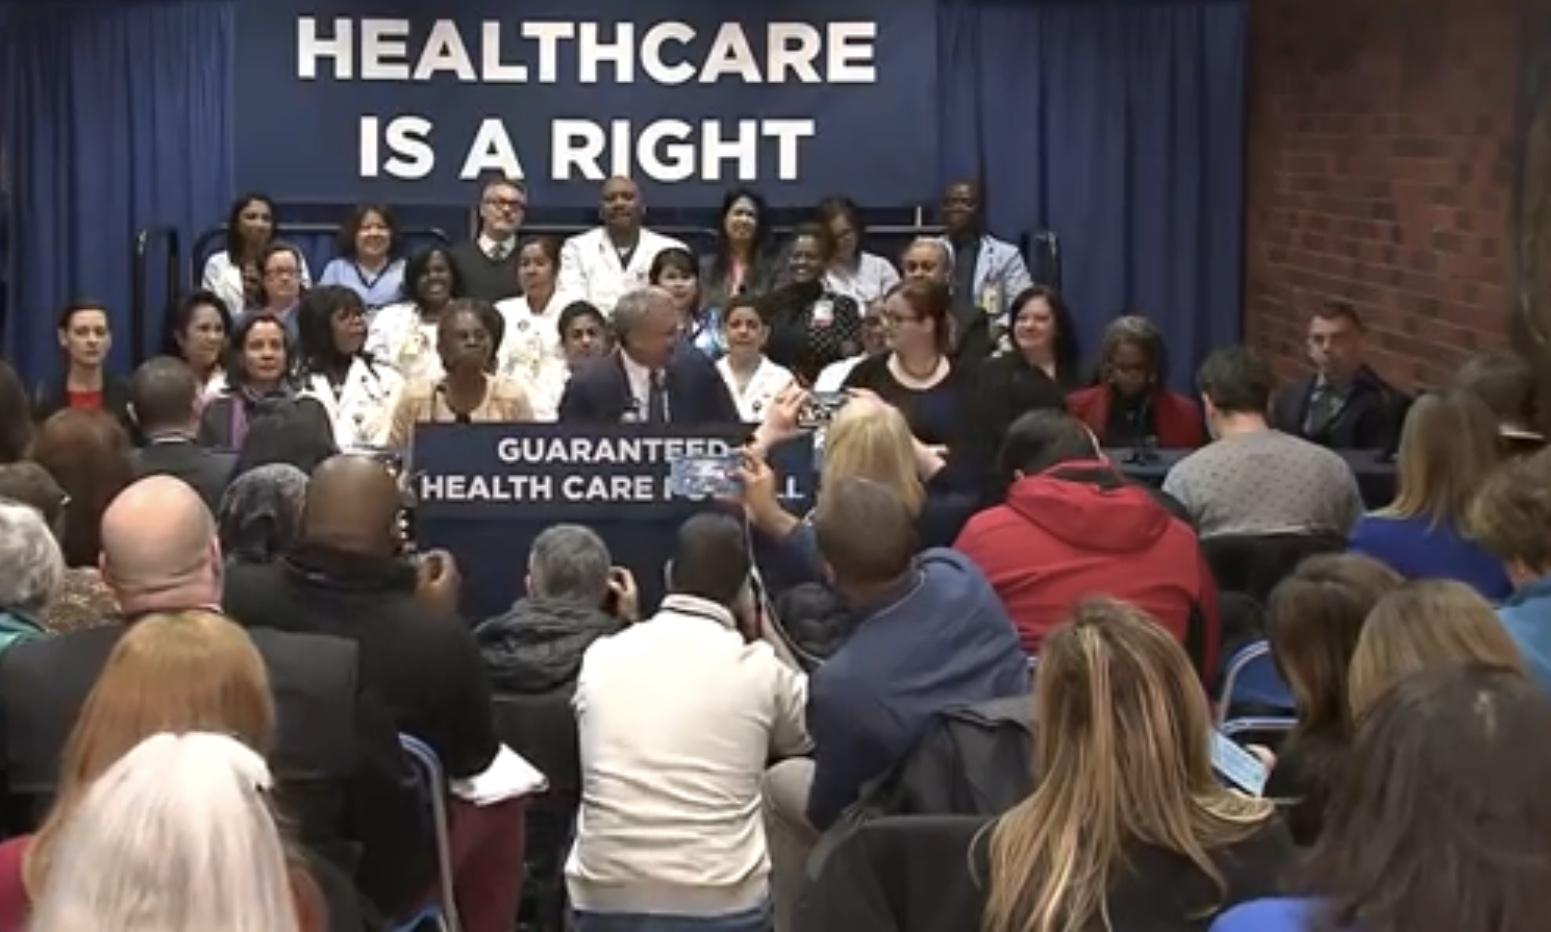 Mayor Bill de Blasio is guaranteeing health coverage for every resident in New York City